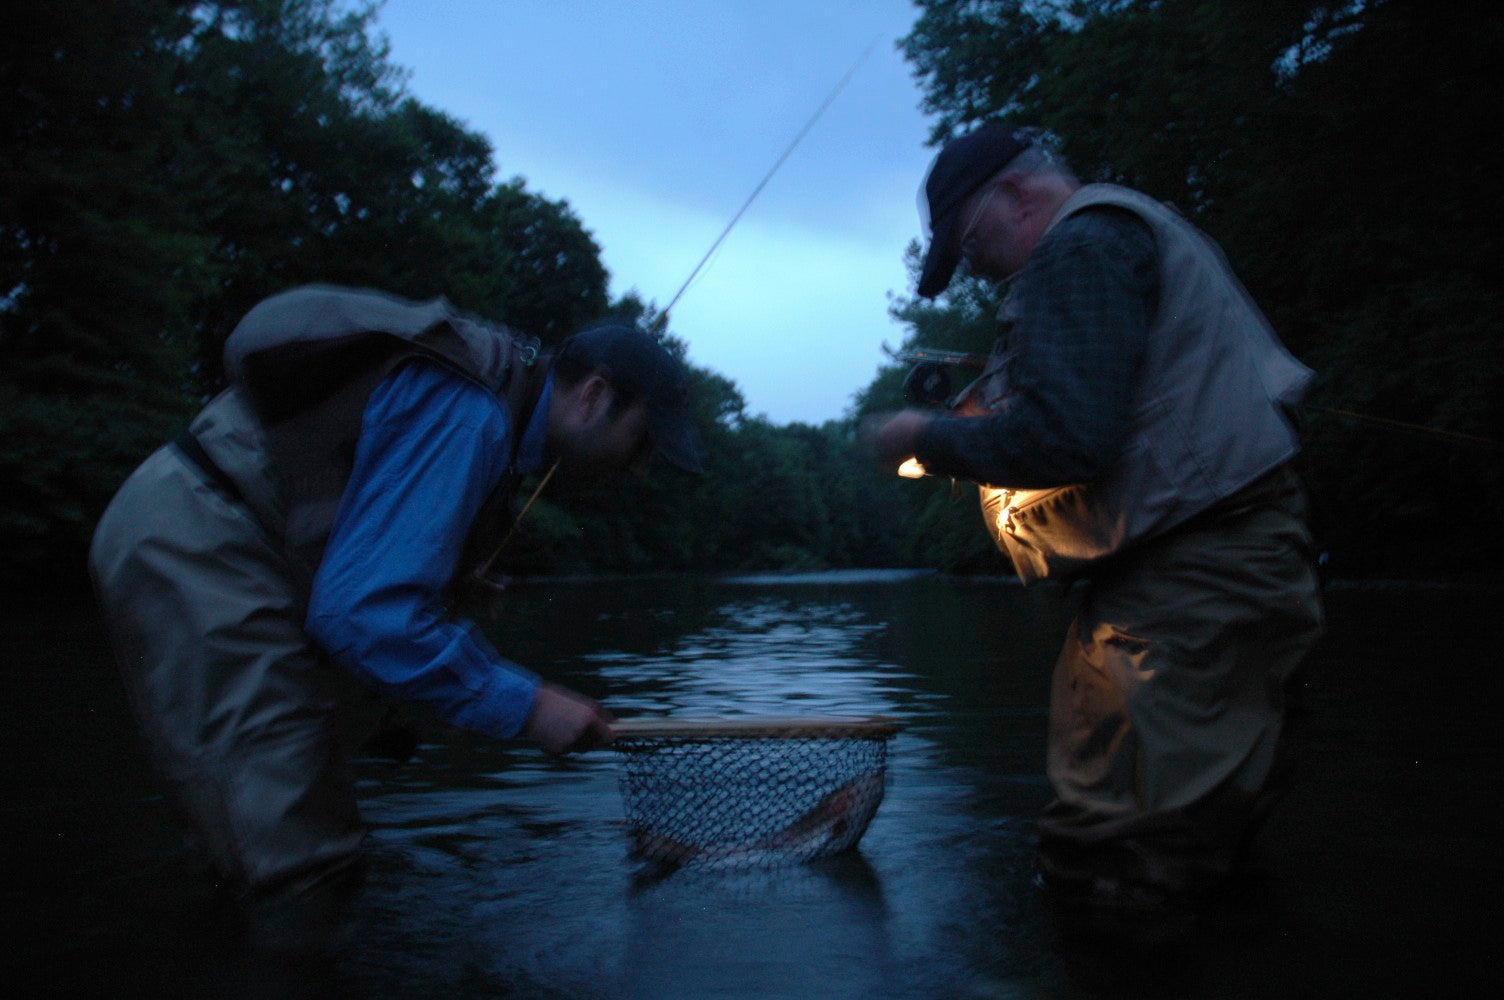 Photo of the day night fish spinoza rod company for Trout fishing at night